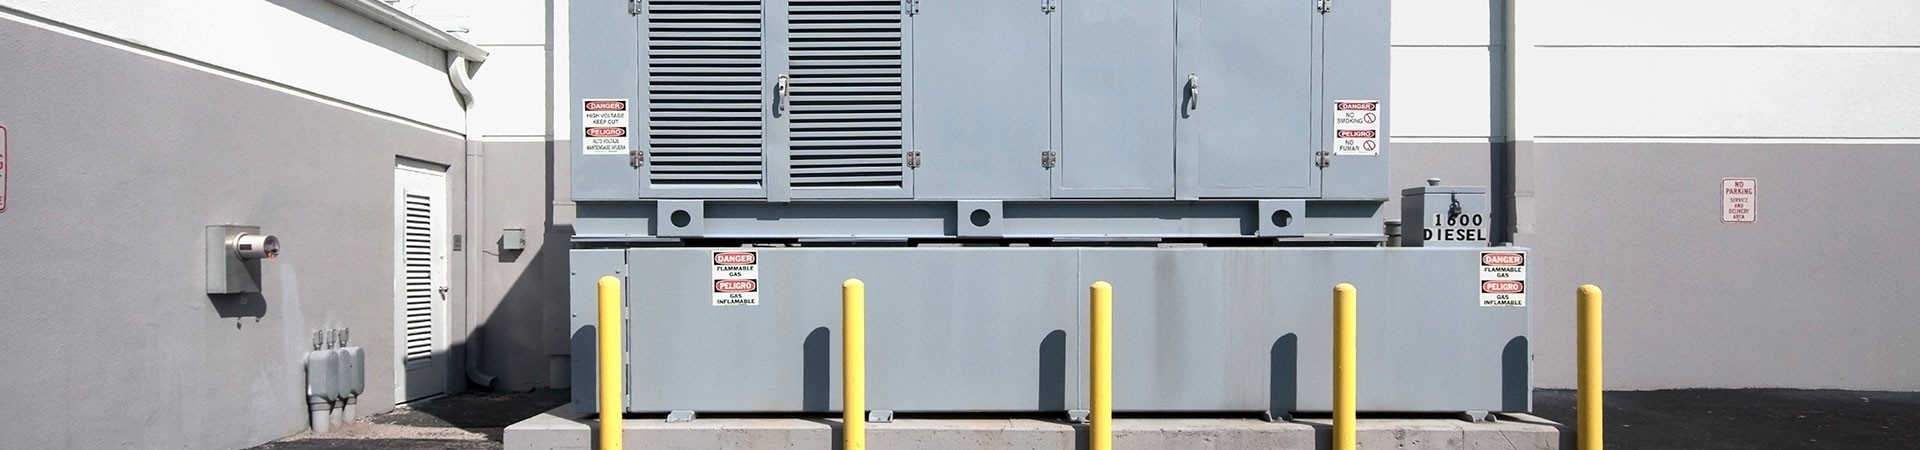 backup_power_standby_generators